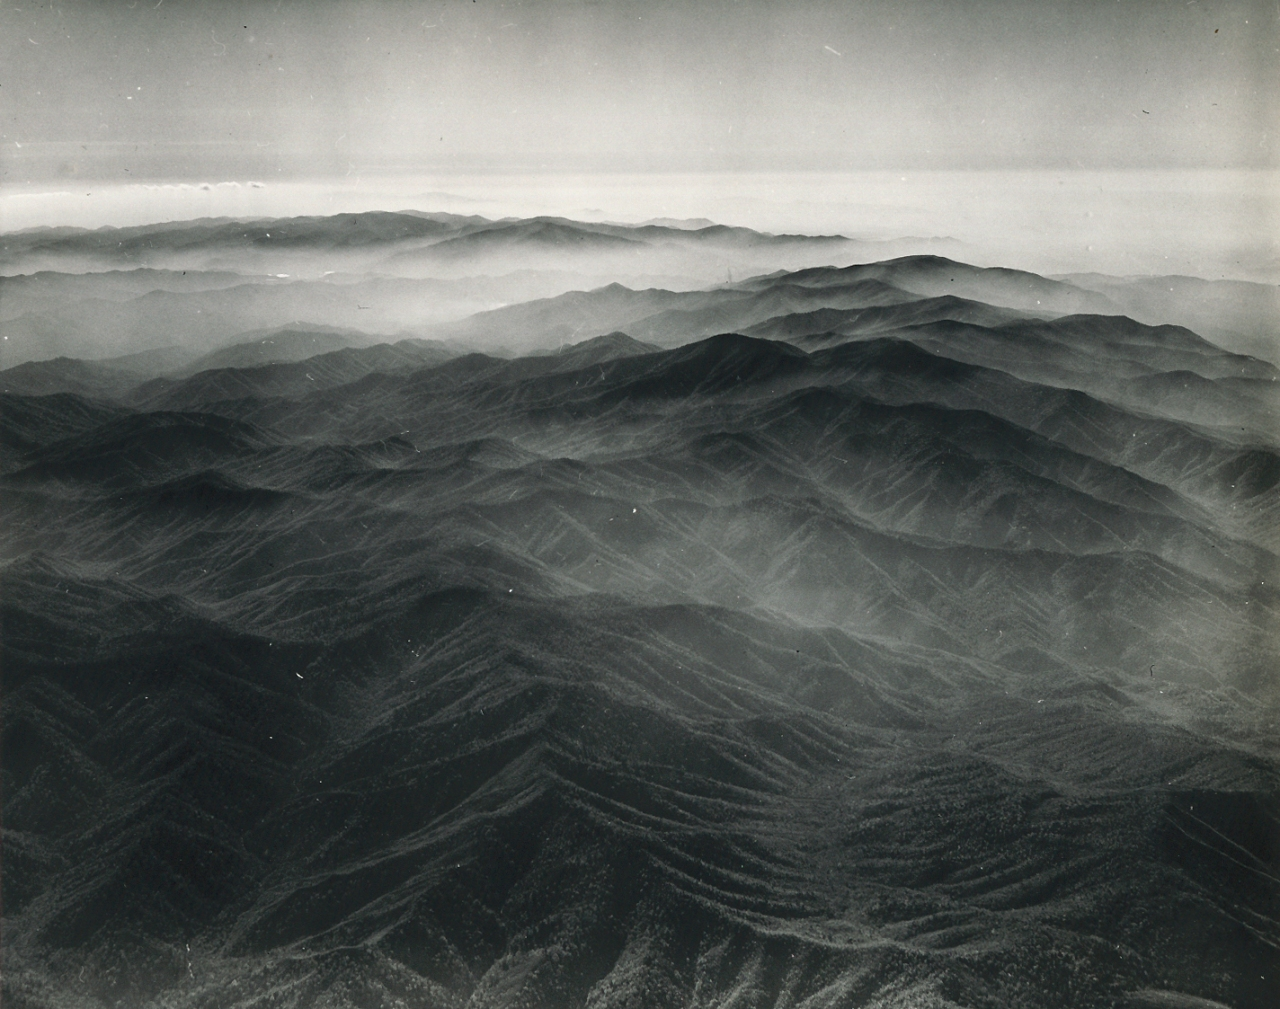 VINTAGE: Sights of the Great Smoky Mountains National Park ...